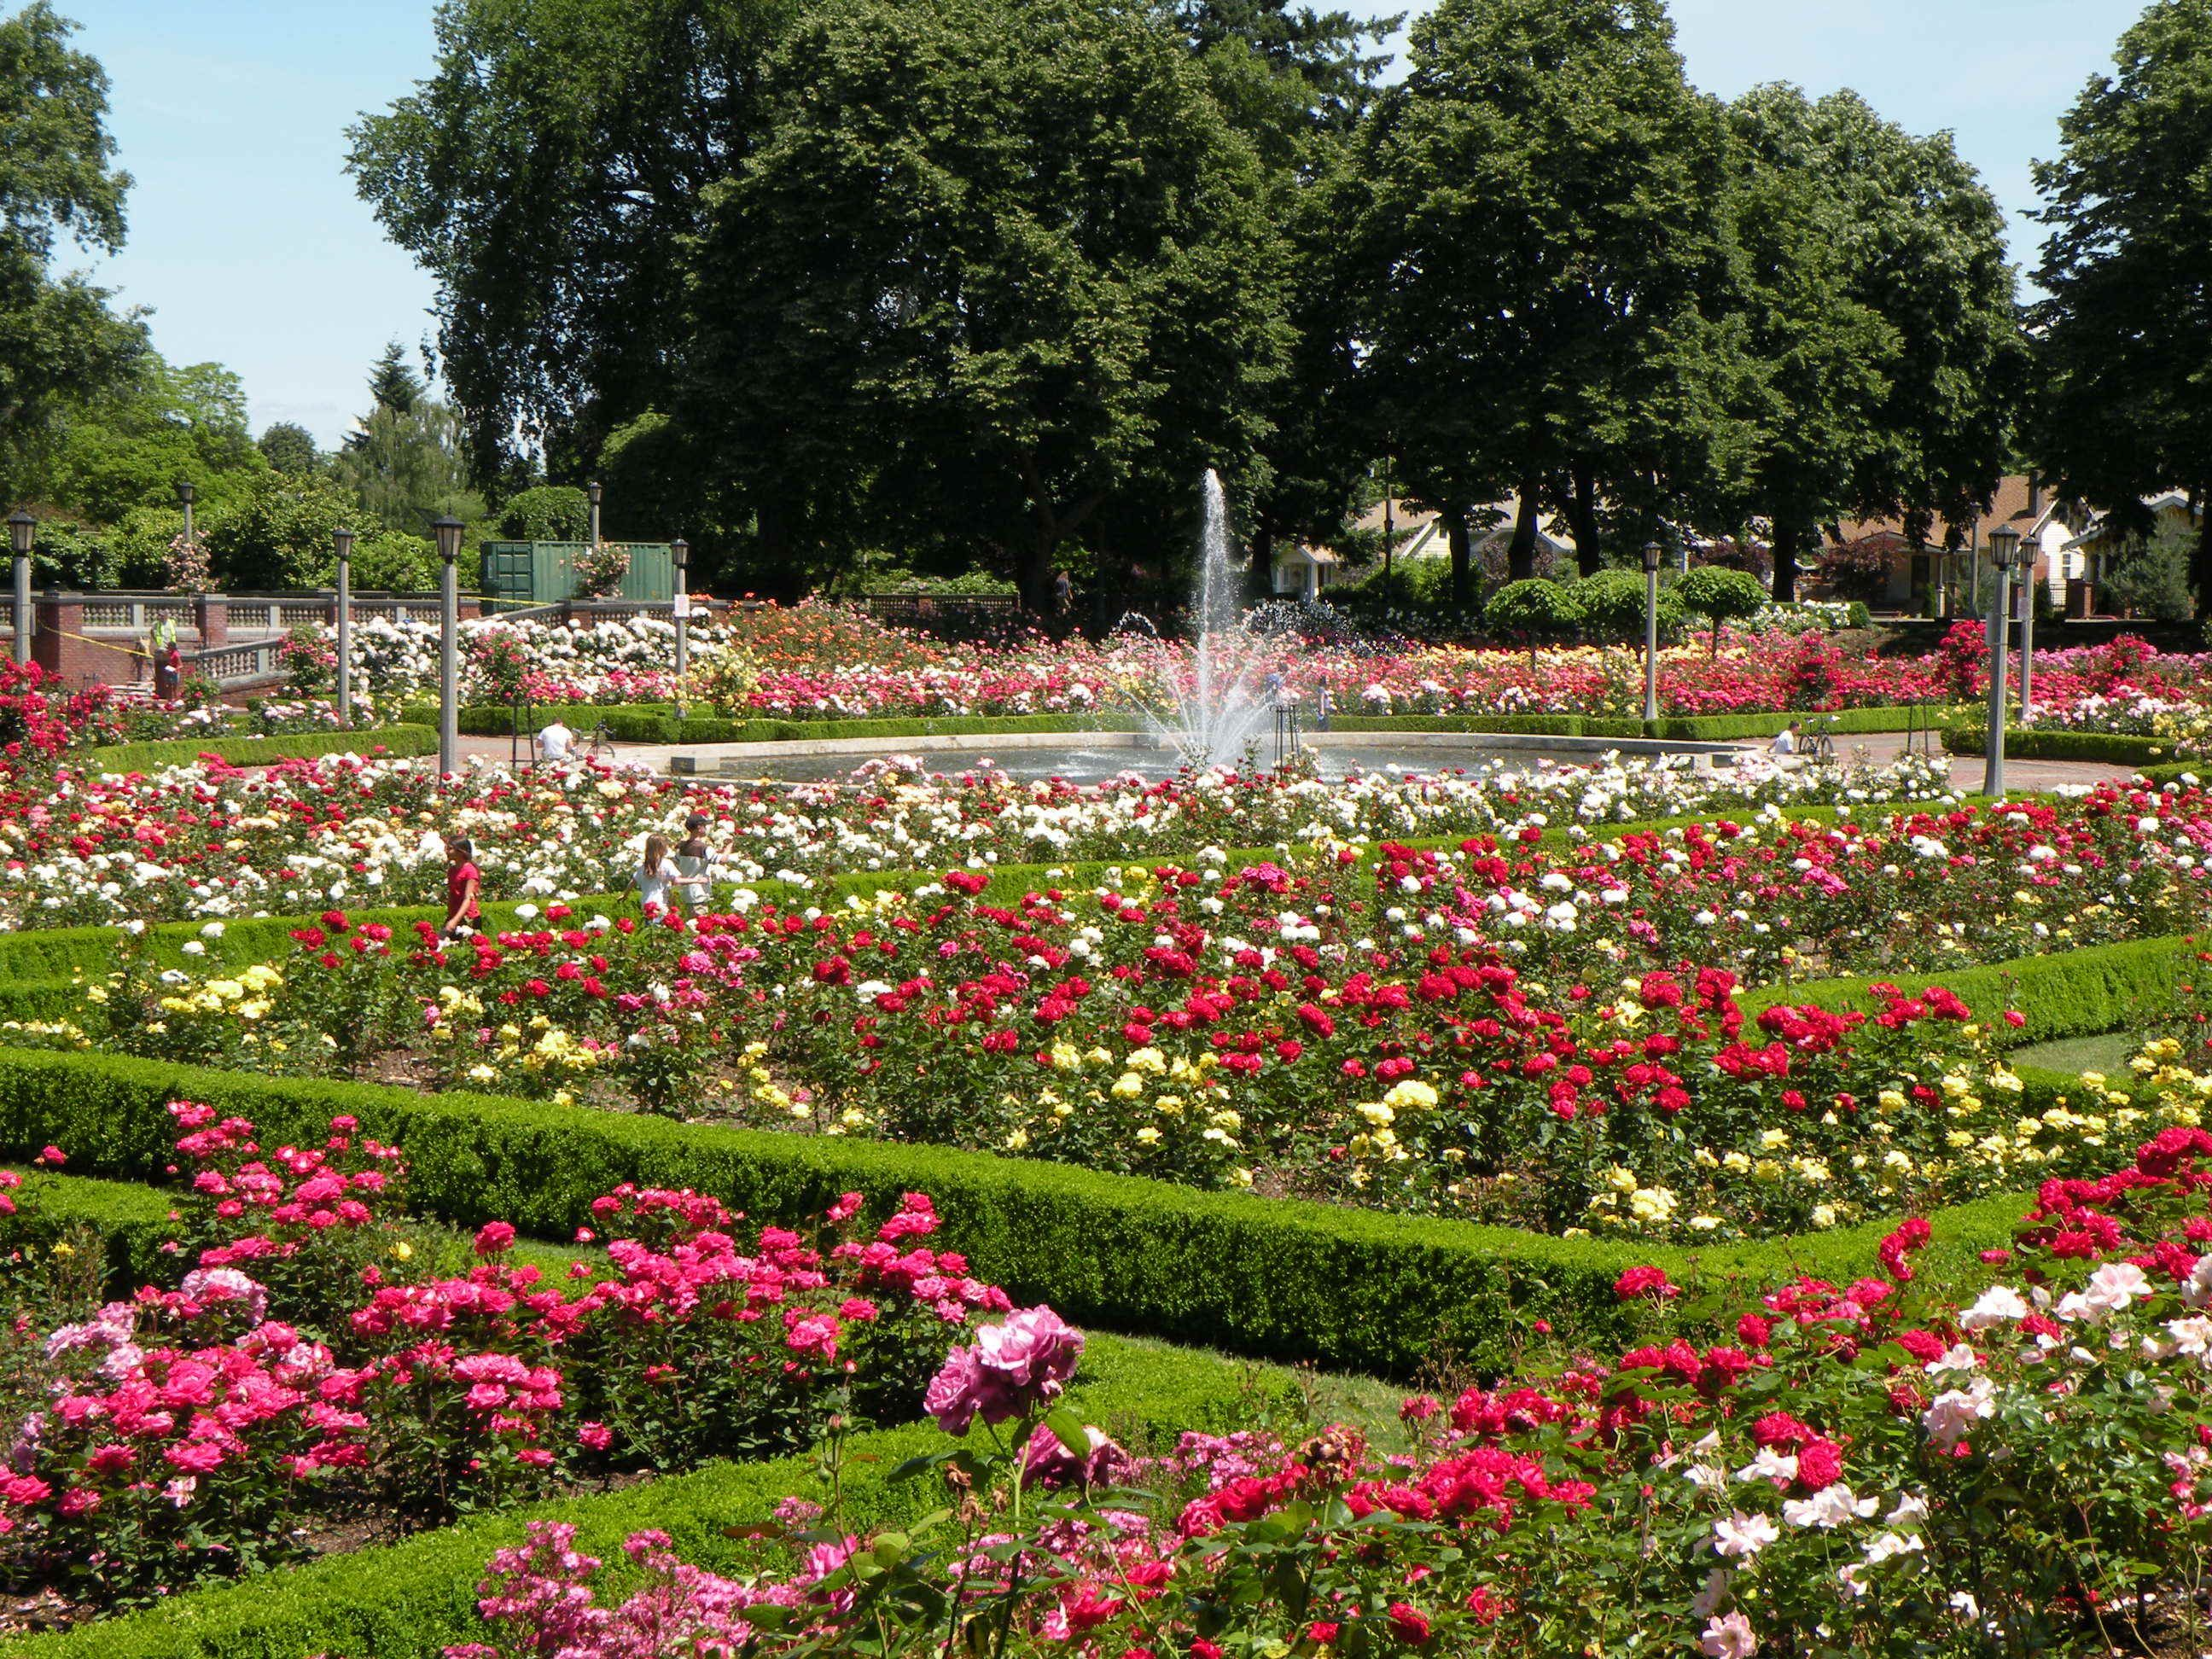 The Rose Garden In Portland Has The Most Beautiful Roses In The